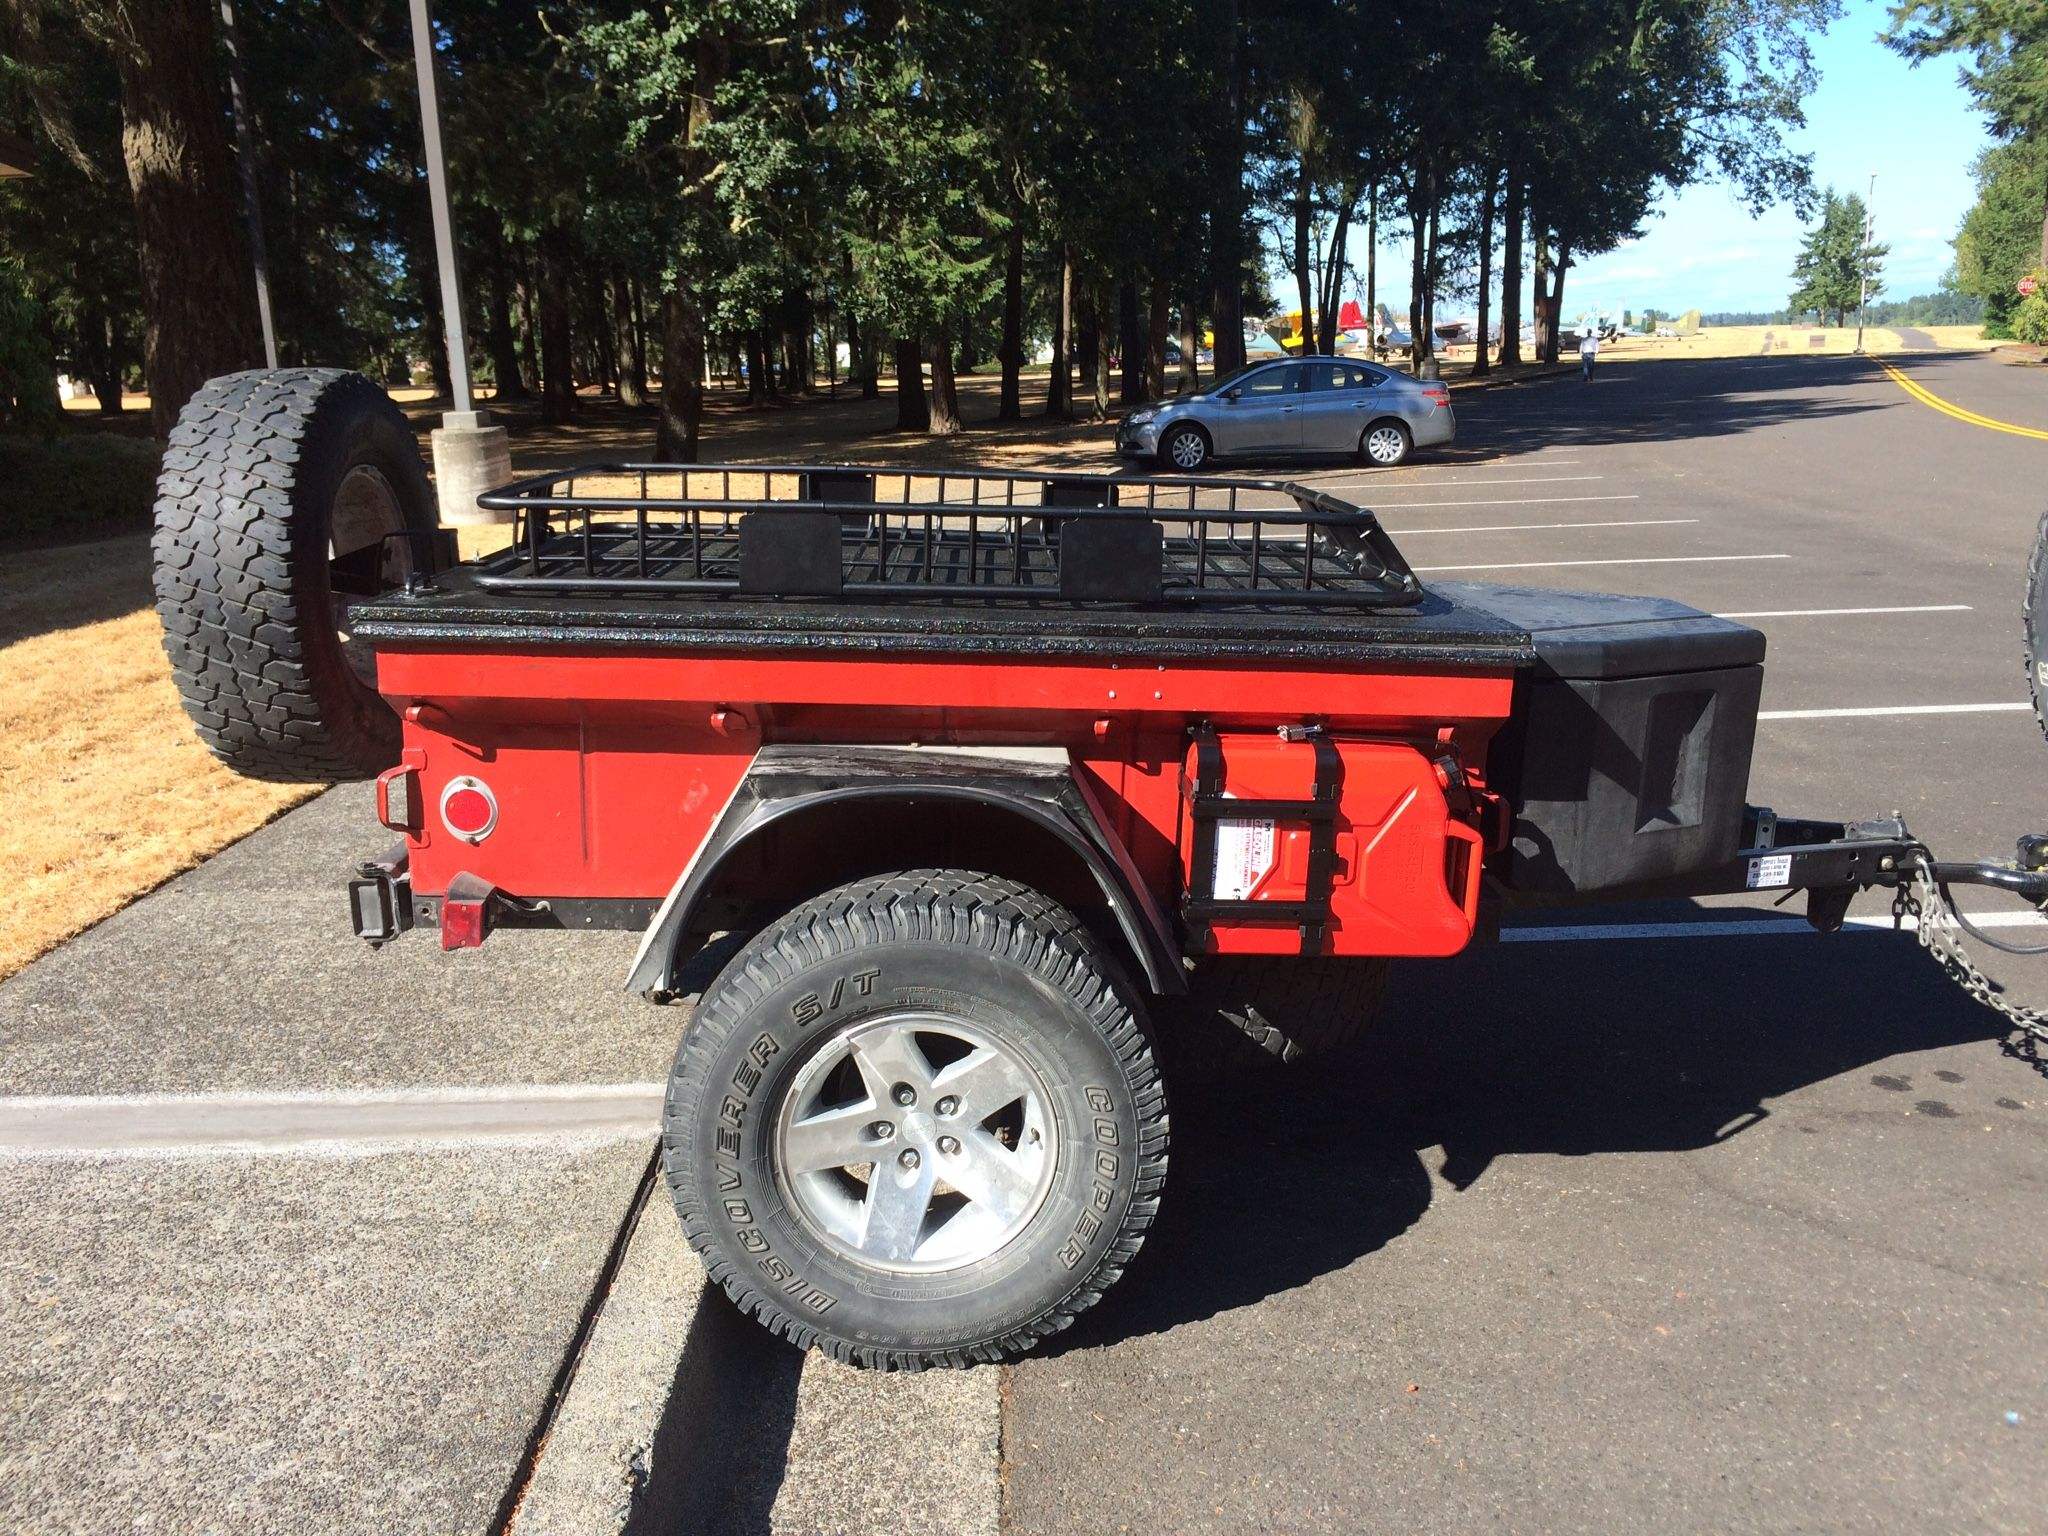 M416 Trailer | Camping Trailer | Expedition trailer, Jeep, Kayak trailer